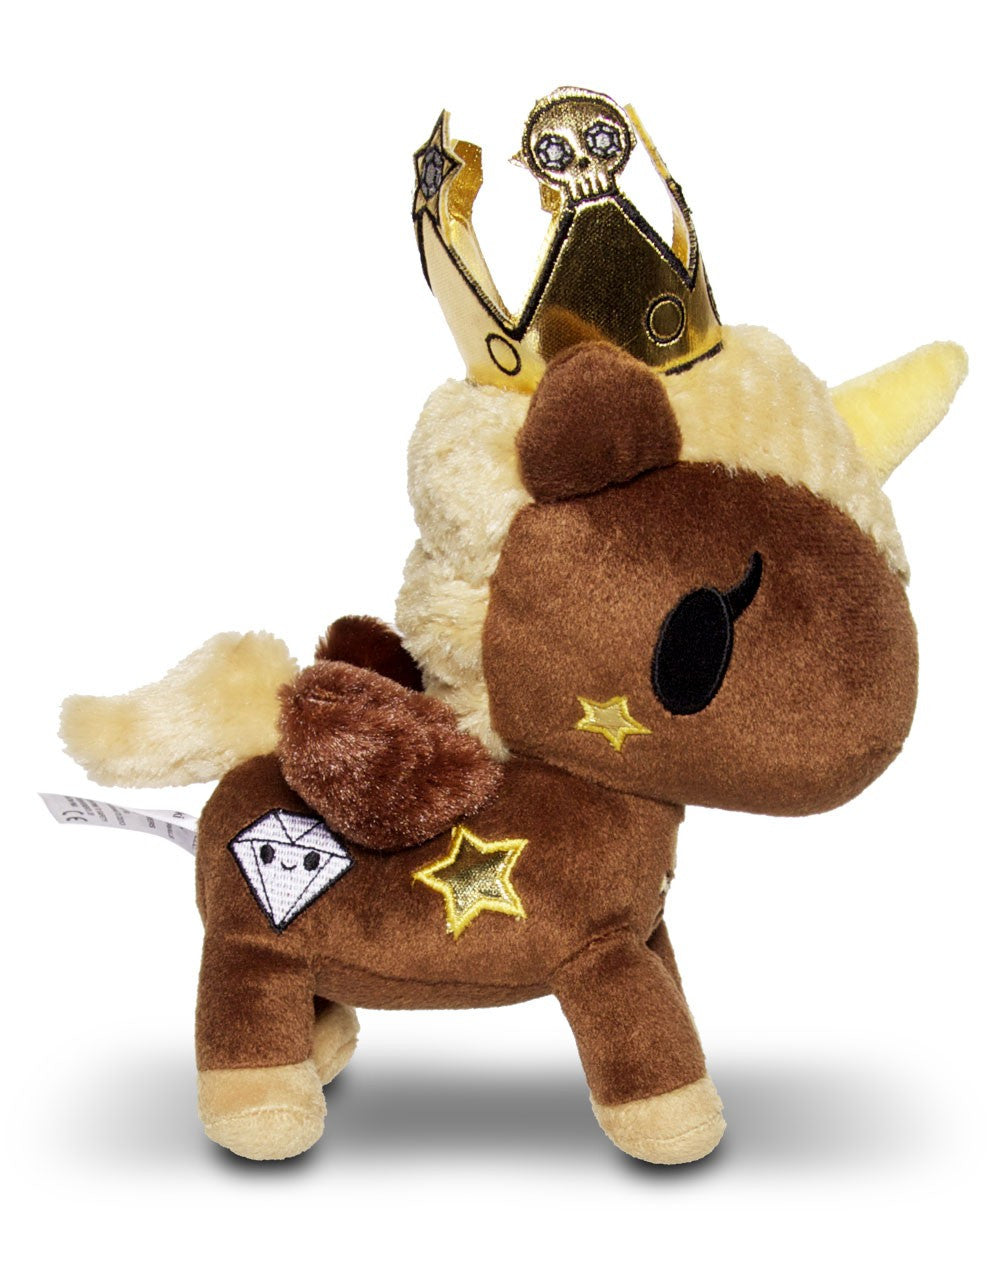 tokidoki - Prima Donna Unicorno Plush Toy - The Giant Peach - 4